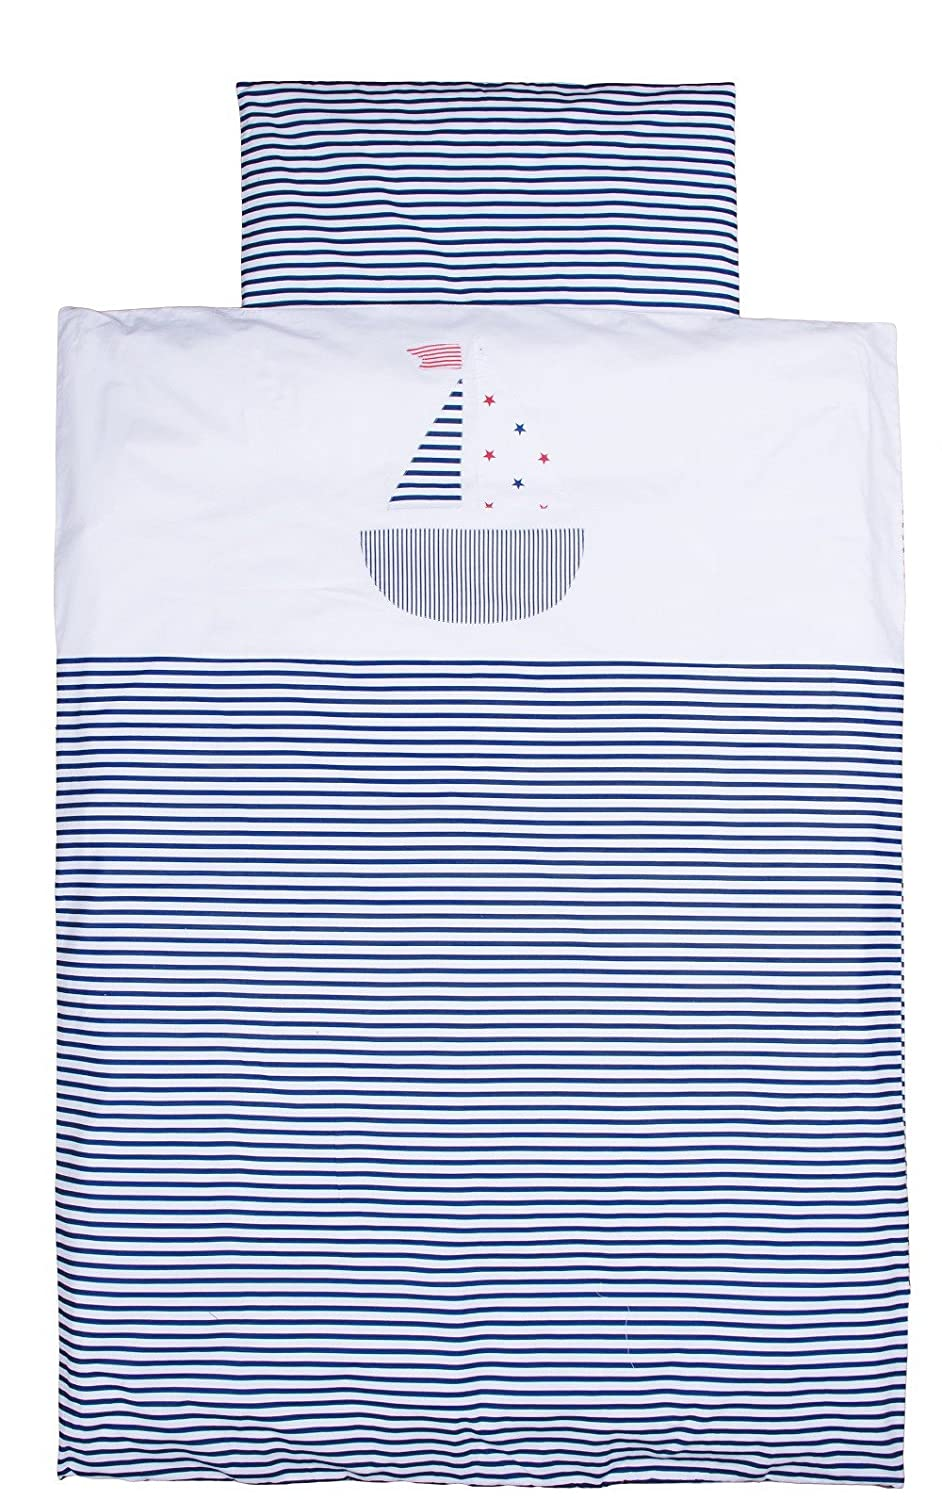 Vizaro - Duvet Cover Bedding Set (90x120cm, 30x60cm) for COT (60x120cm) - 100% Luxury Cotton - Made exclusively in the European Union, fabrics successfully tested for harmful substances - Collection Little Sailing Boat